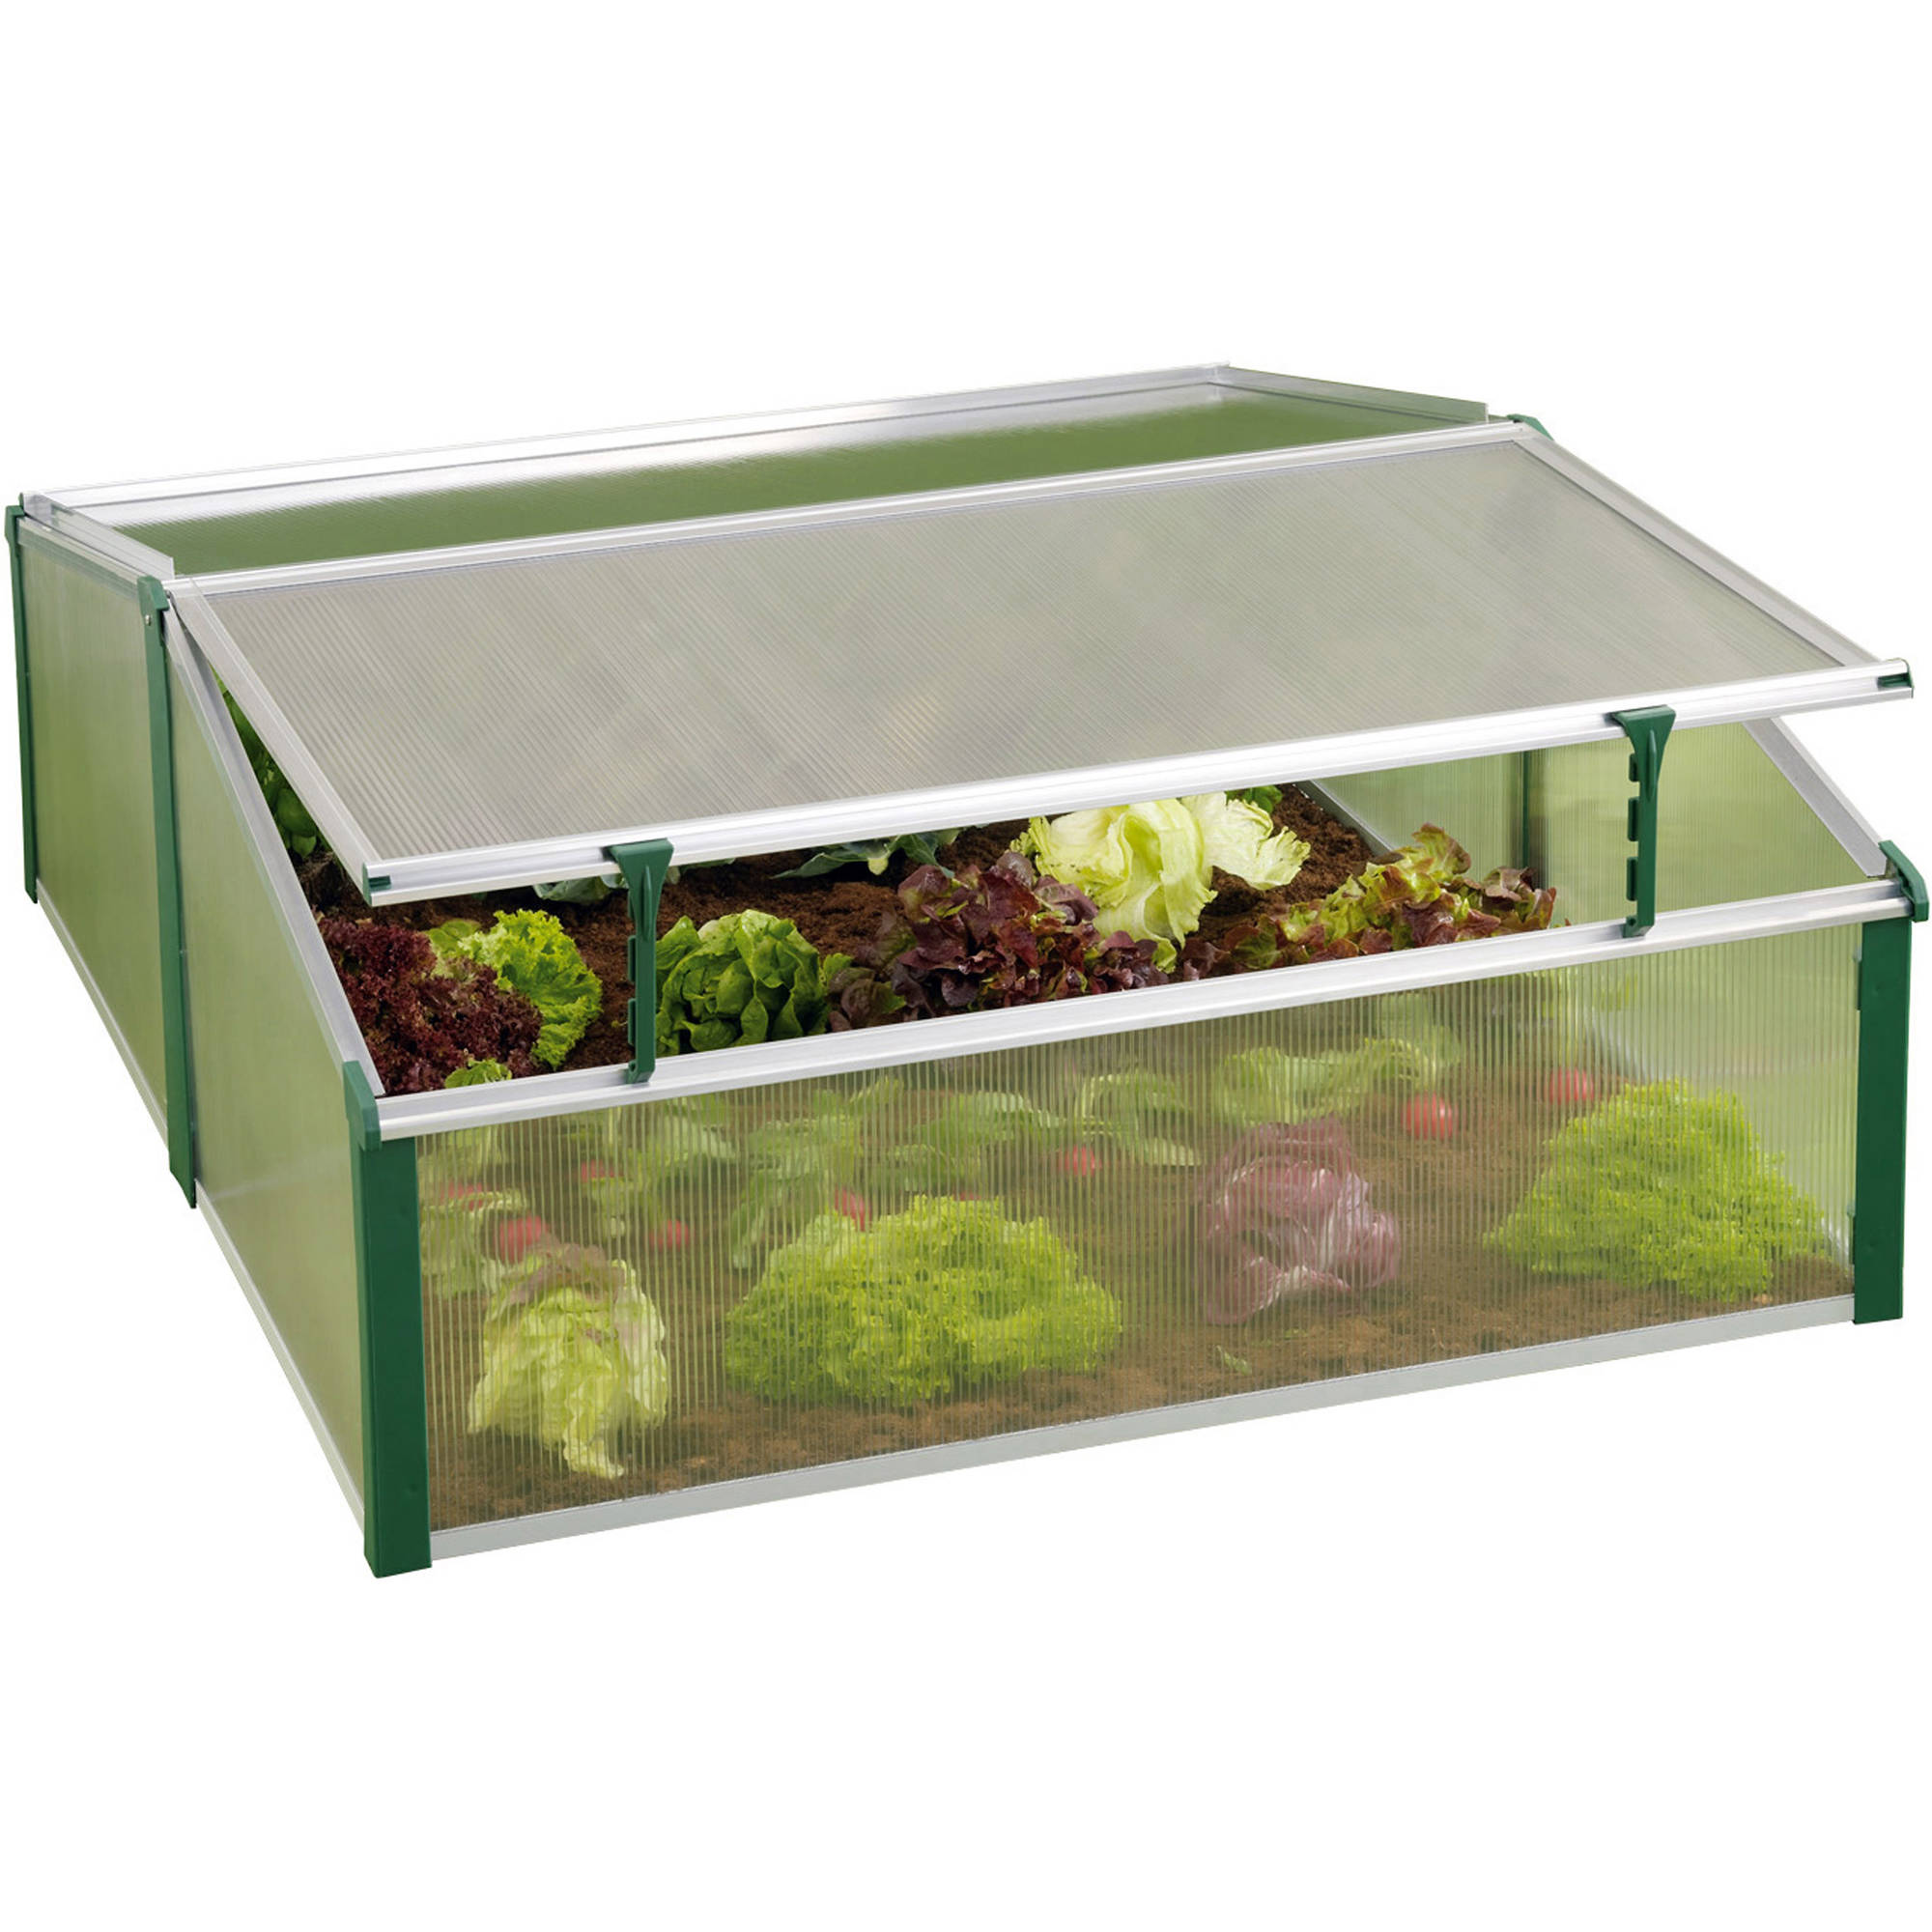 Easy-Fix Double Cold Frame